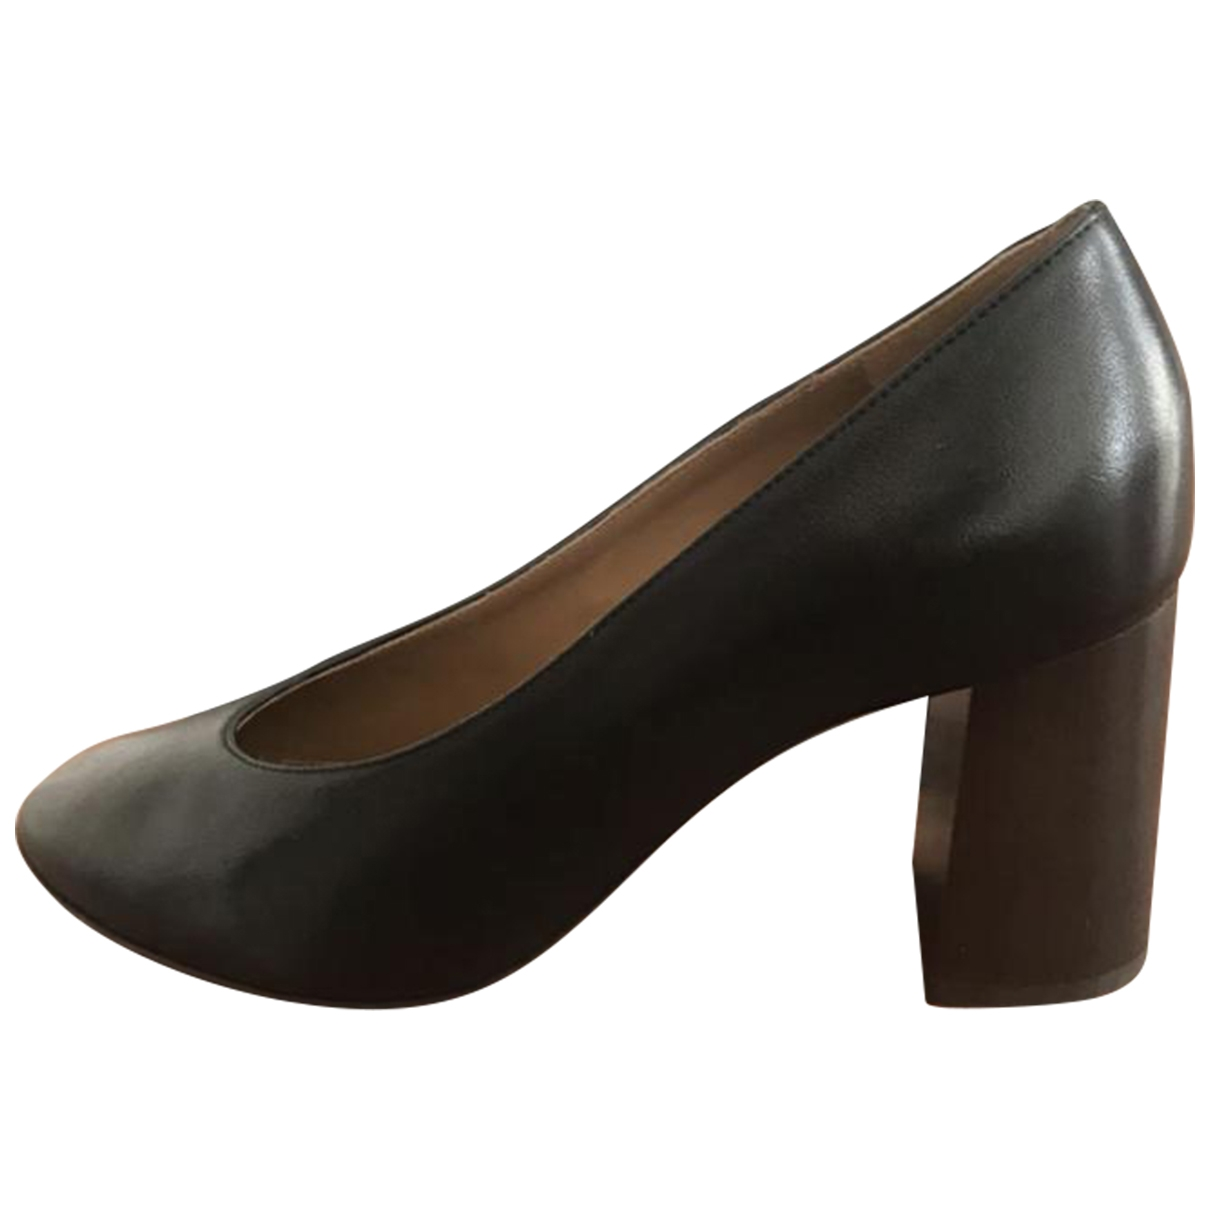 Chloé \N Black Leather Heels for Women 37 EU